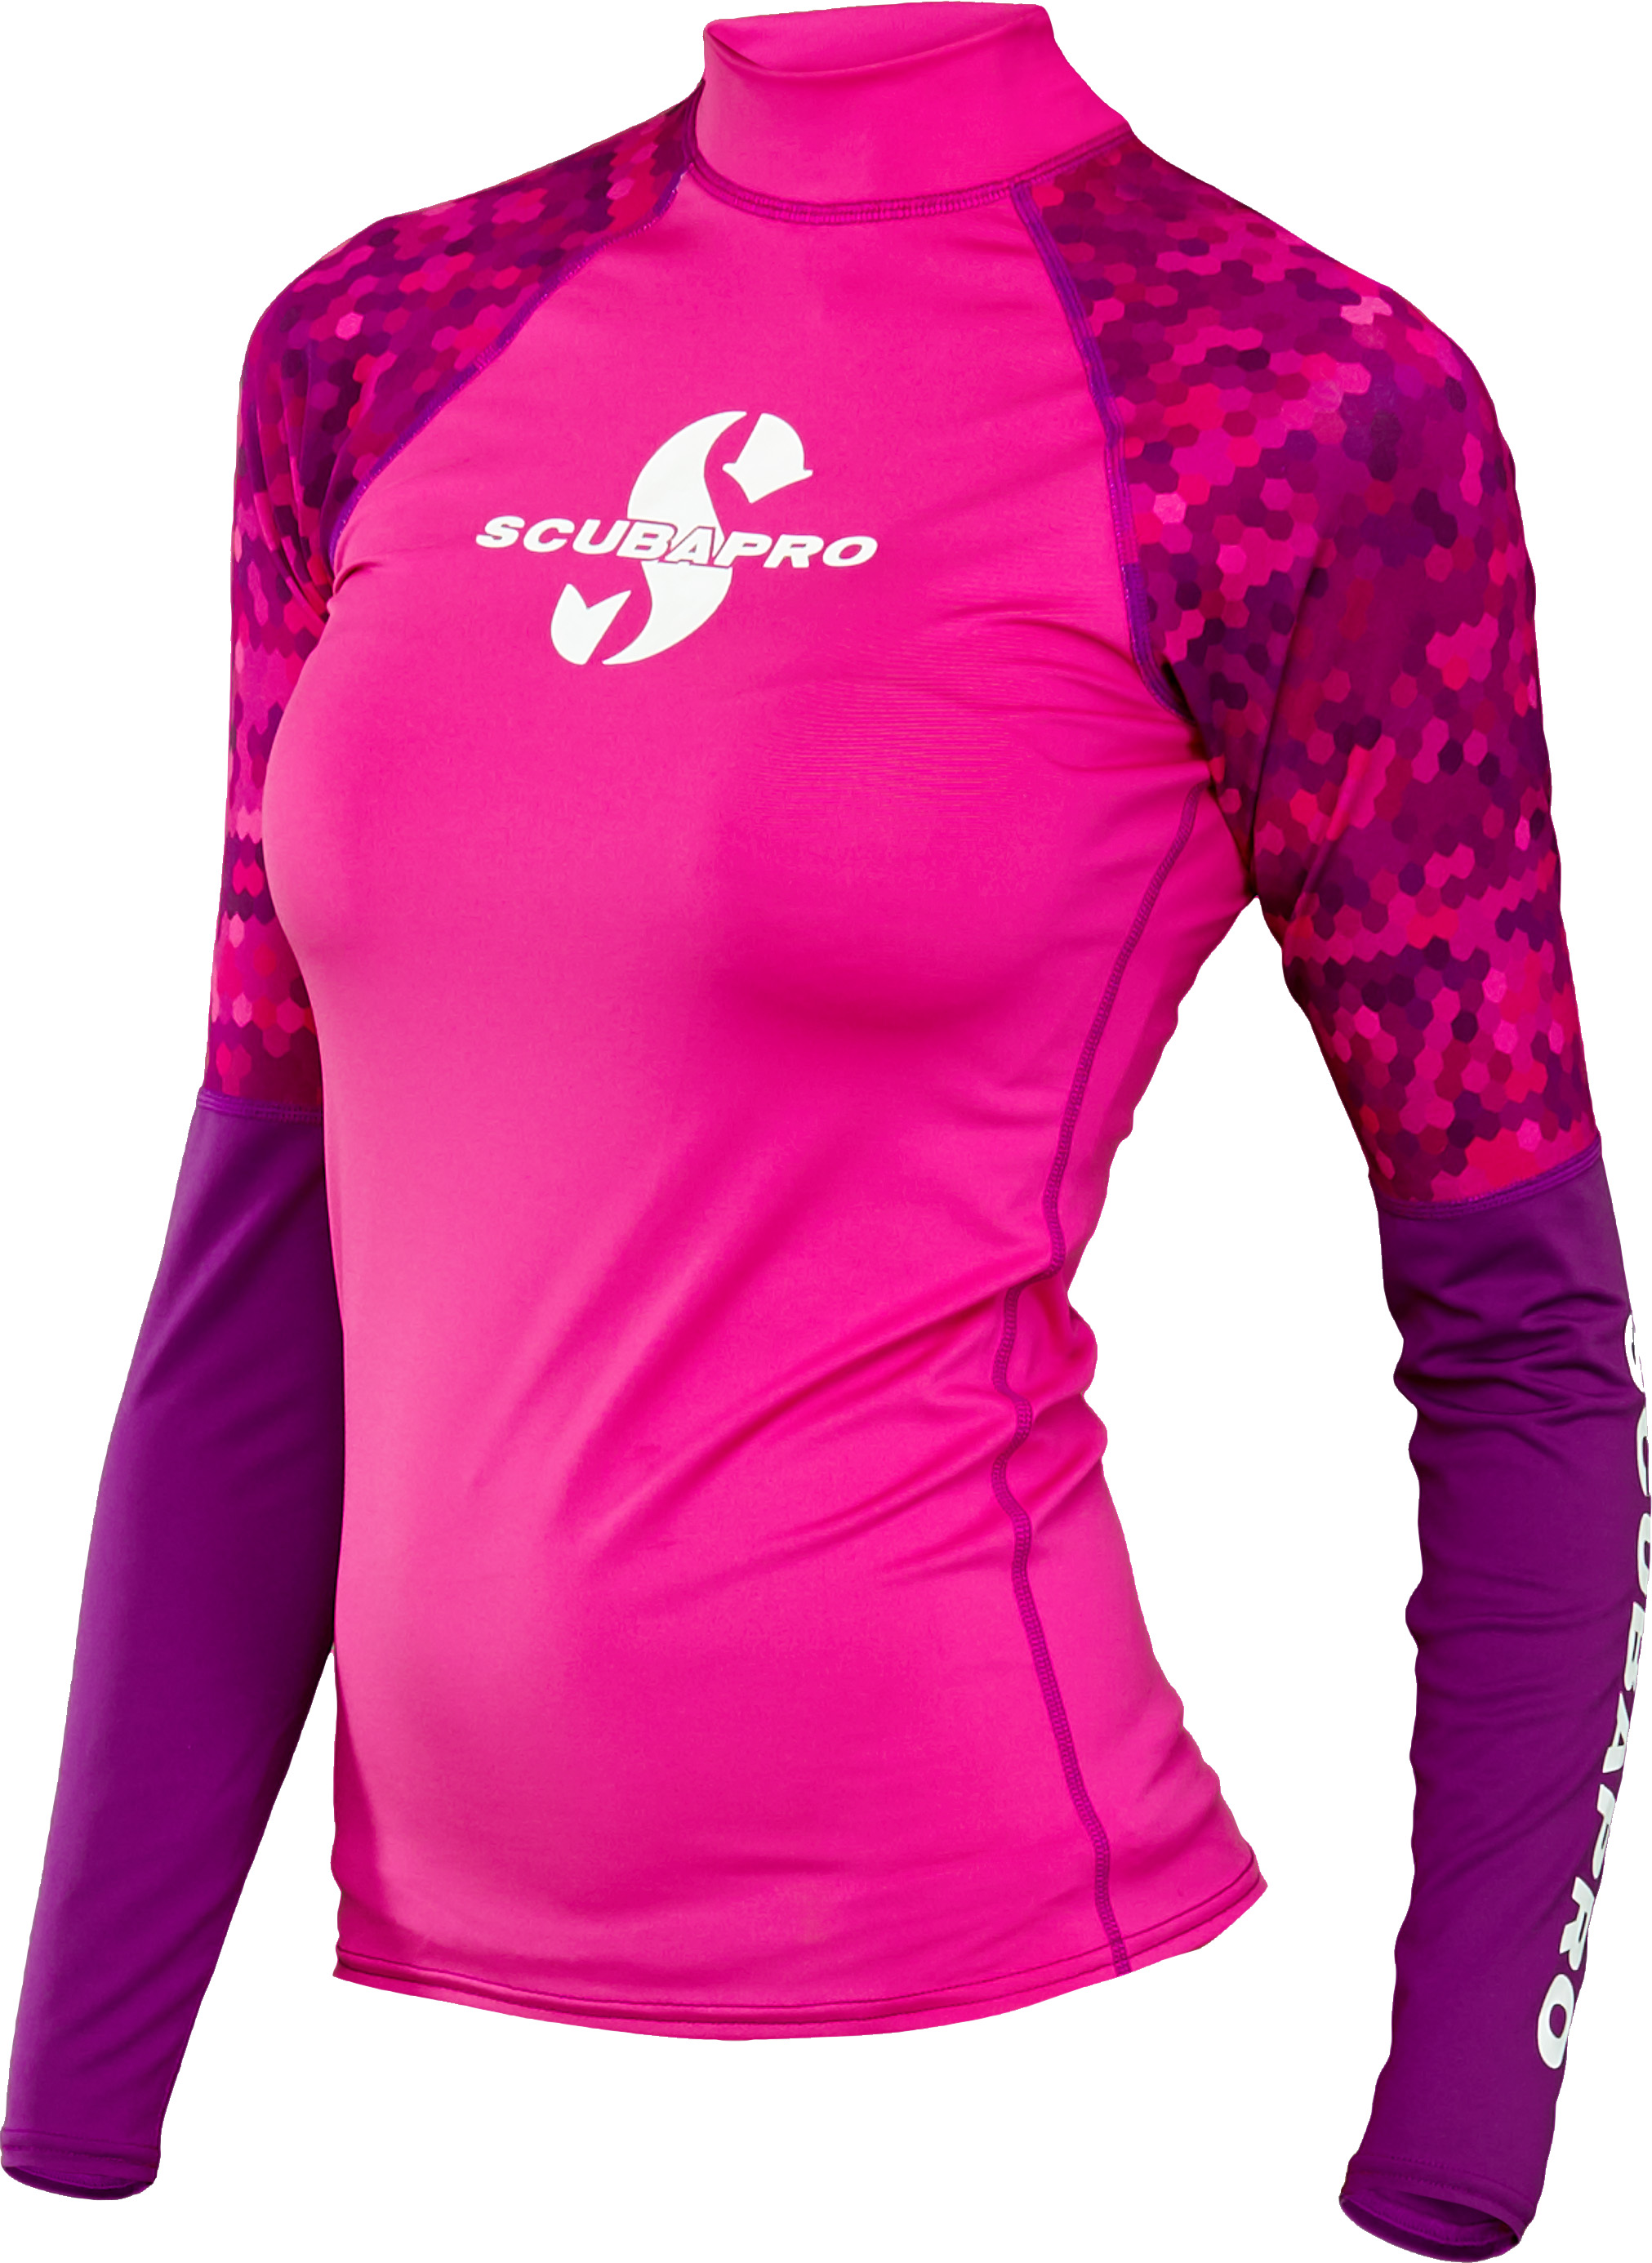 Дамска ликра с UV защита RASH GUARD FLAMINGO LS Lady – Scubapro